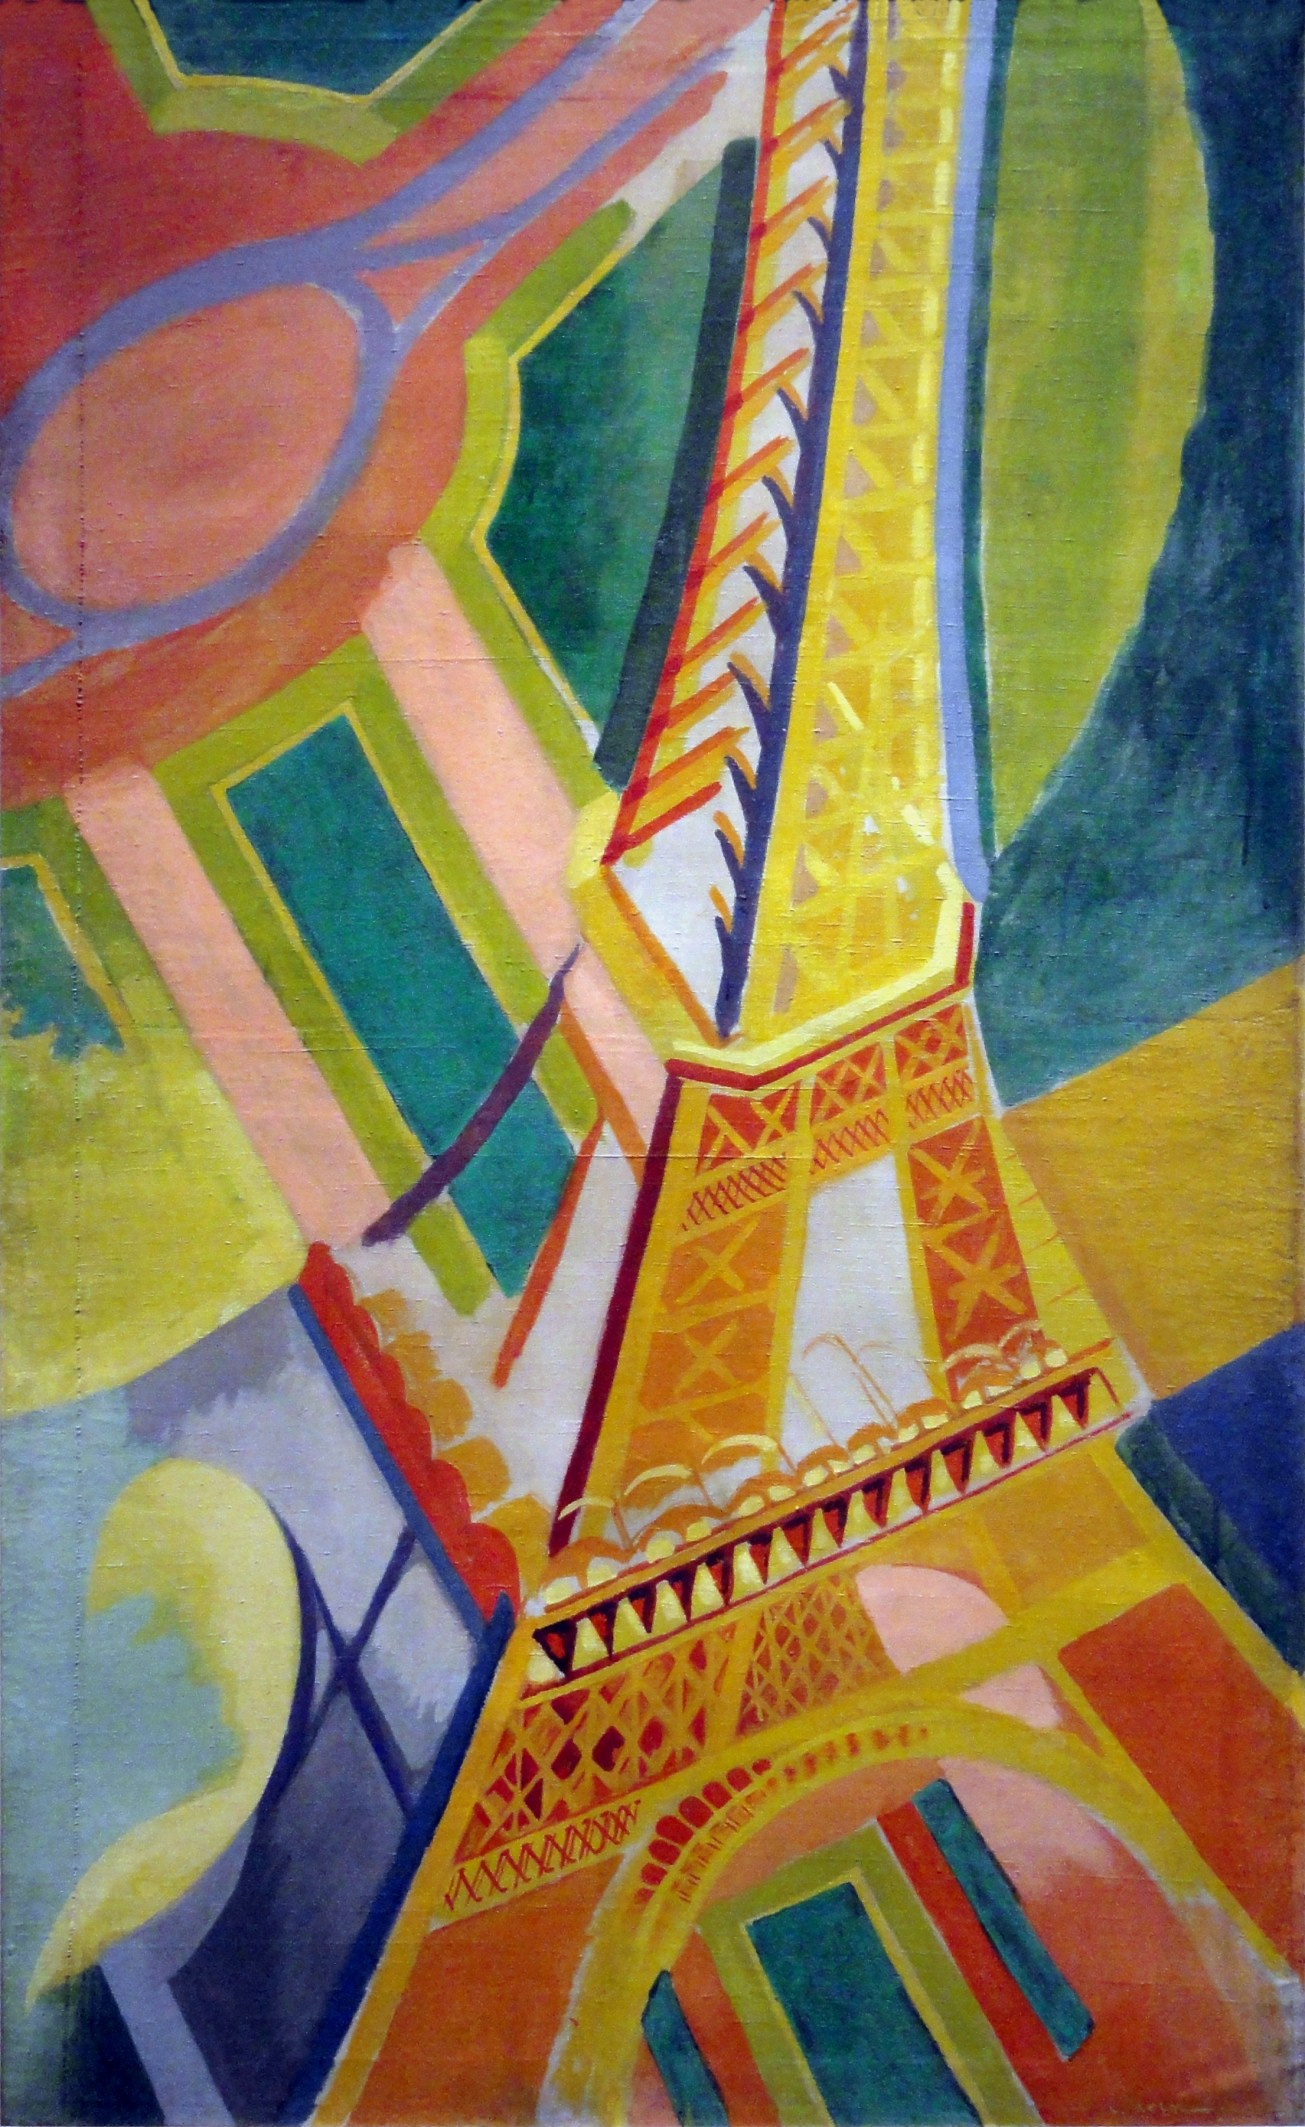 Robert_Delaunay,_1926,_Tour_Eiffel,_oil_on_canvas,_169_×_86_cm,_Musée_d'Art_Moderne_de_la_ville_de_Paris.jpg